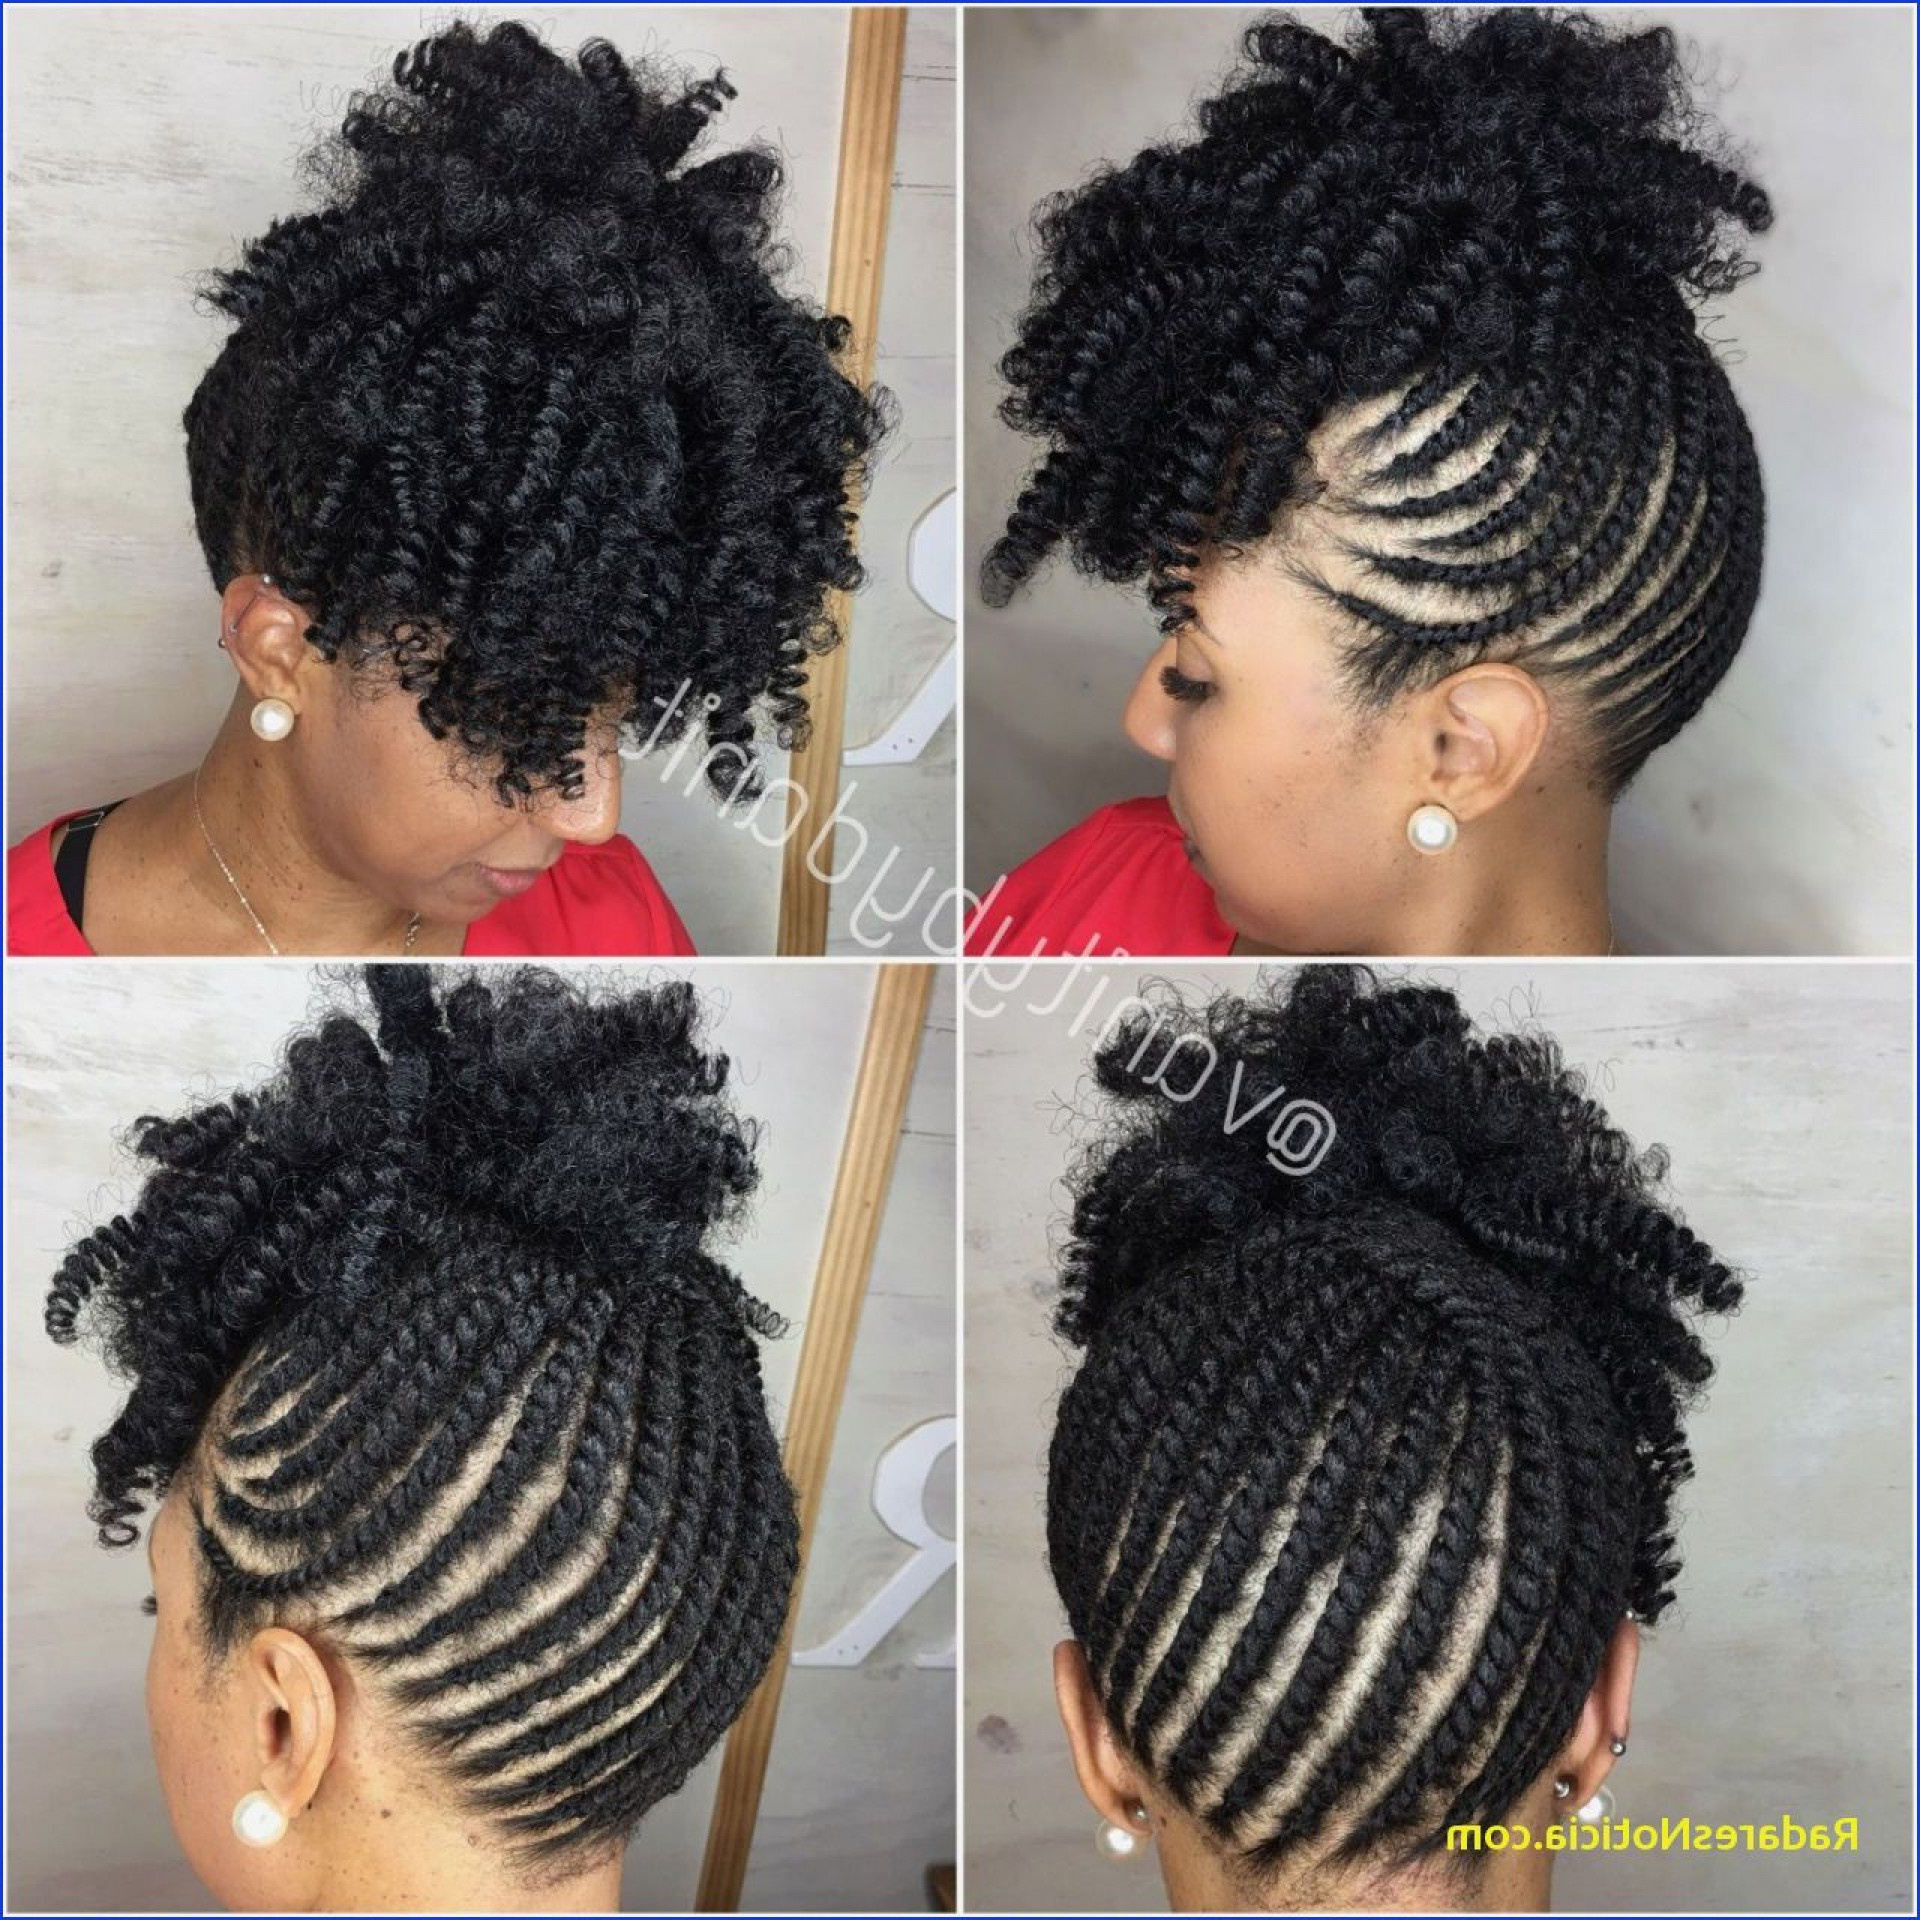 Hairstyles : Black Natural Hair Mohawk Styles Agreeable With Regard To Current Twisted Braids Mohawk Hairstyles (View 10 of 20)